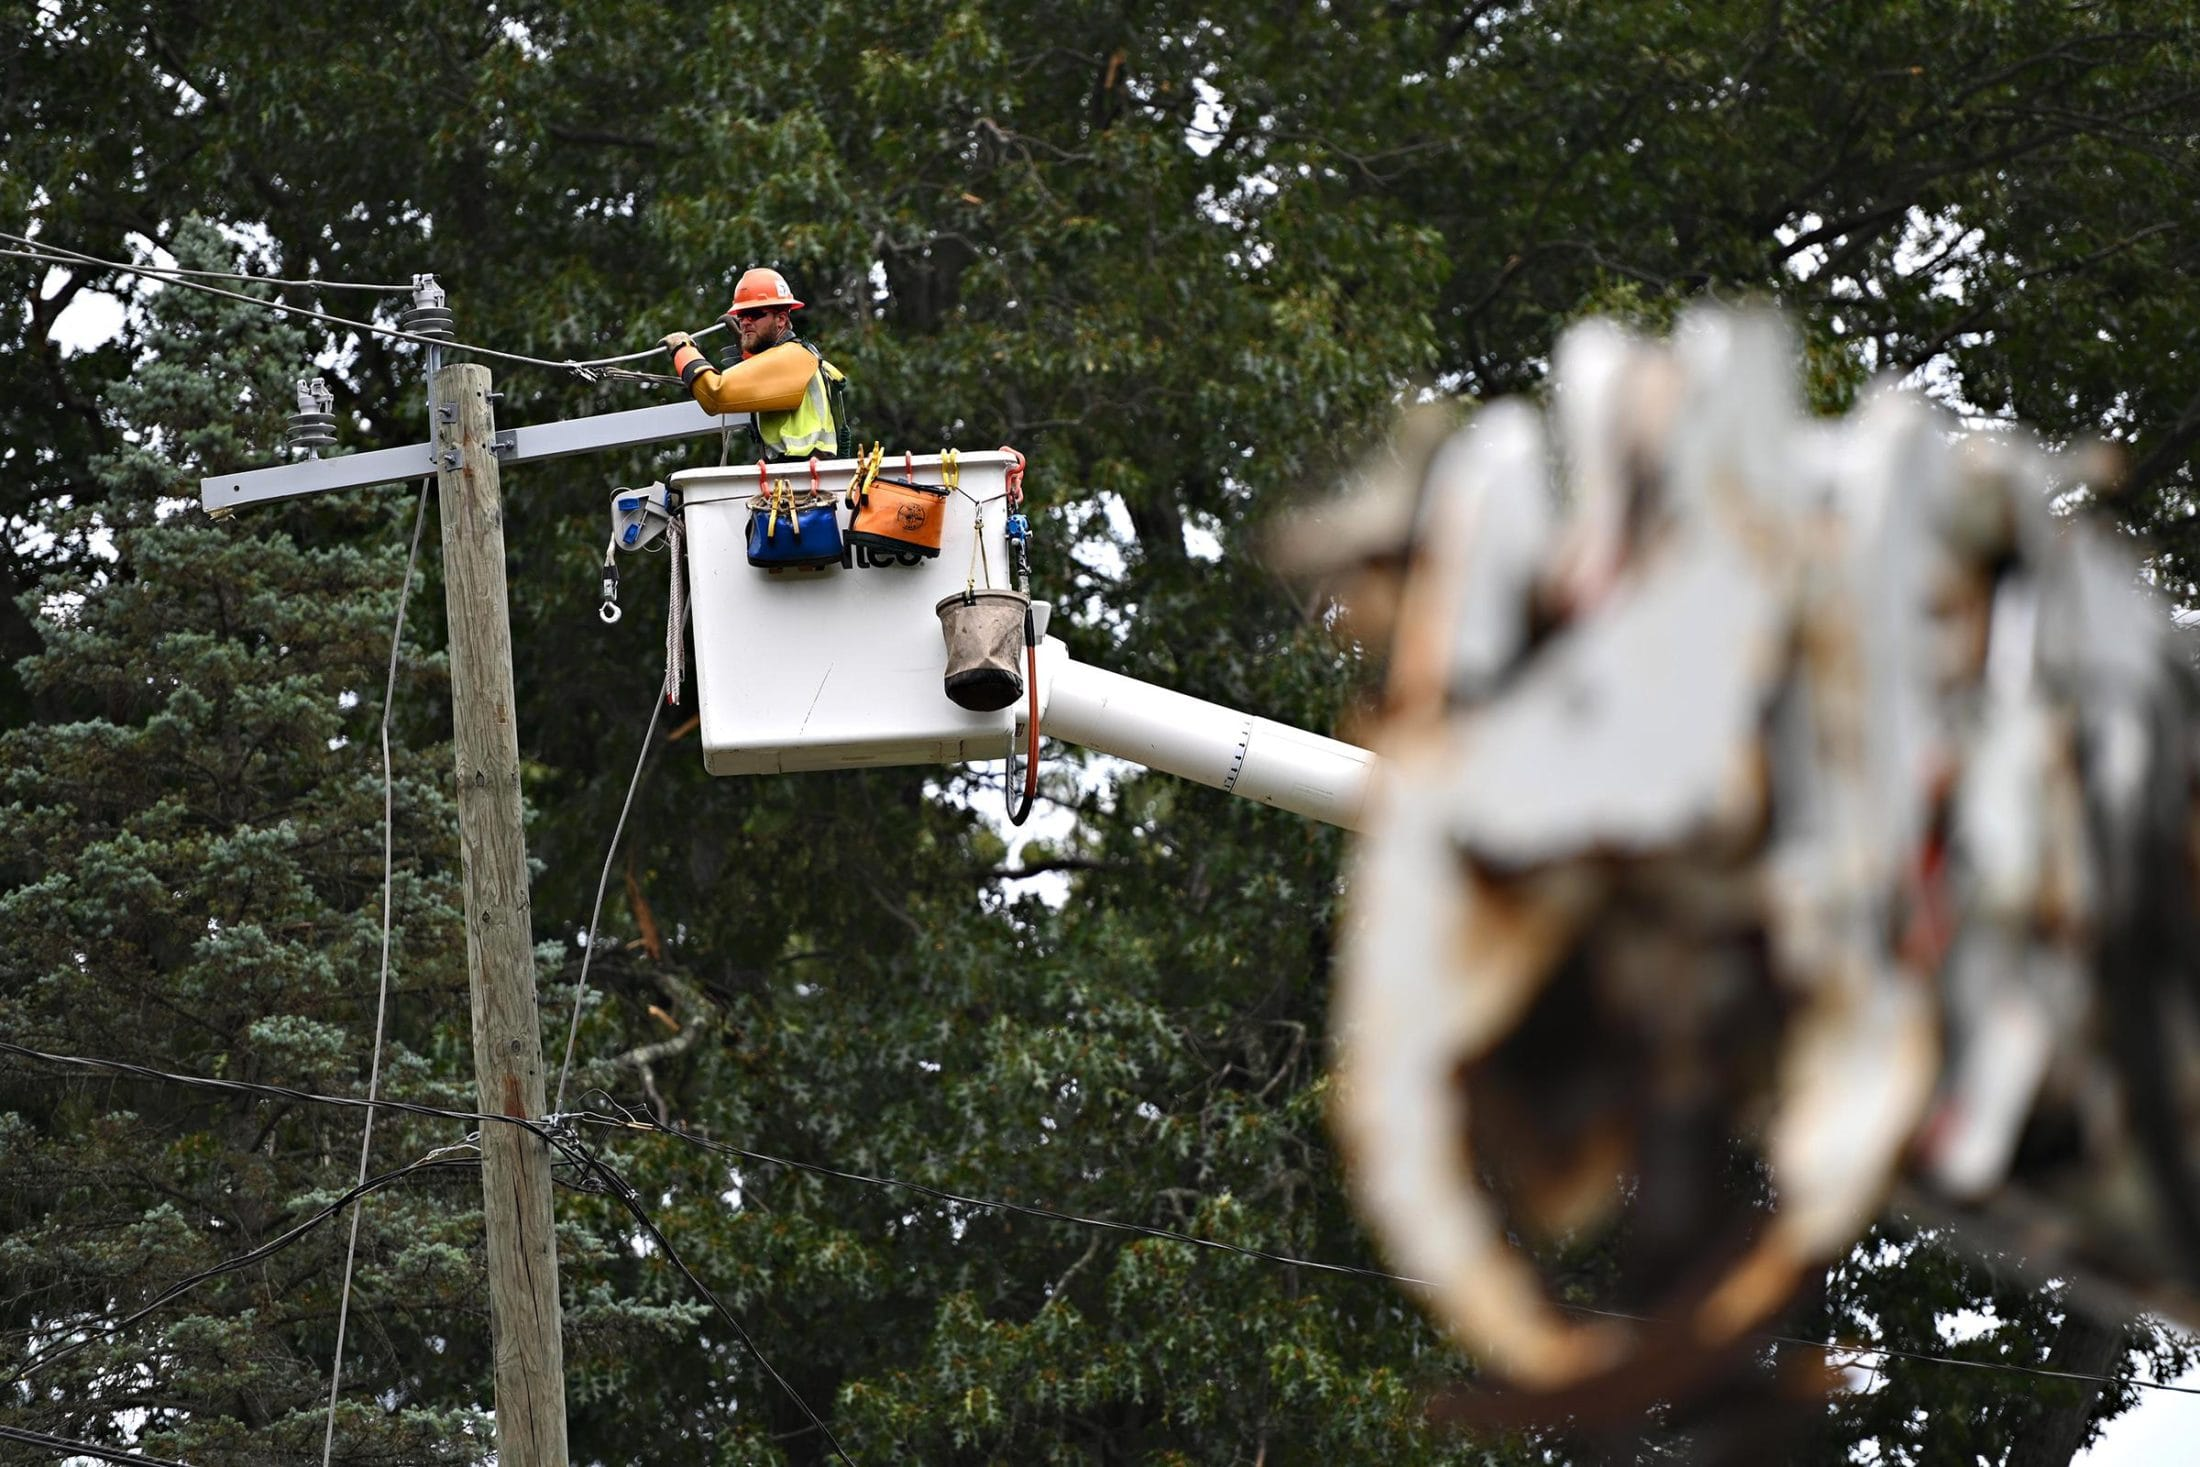 CT keeps losing power when storms strike. But that doesn't have to happen.